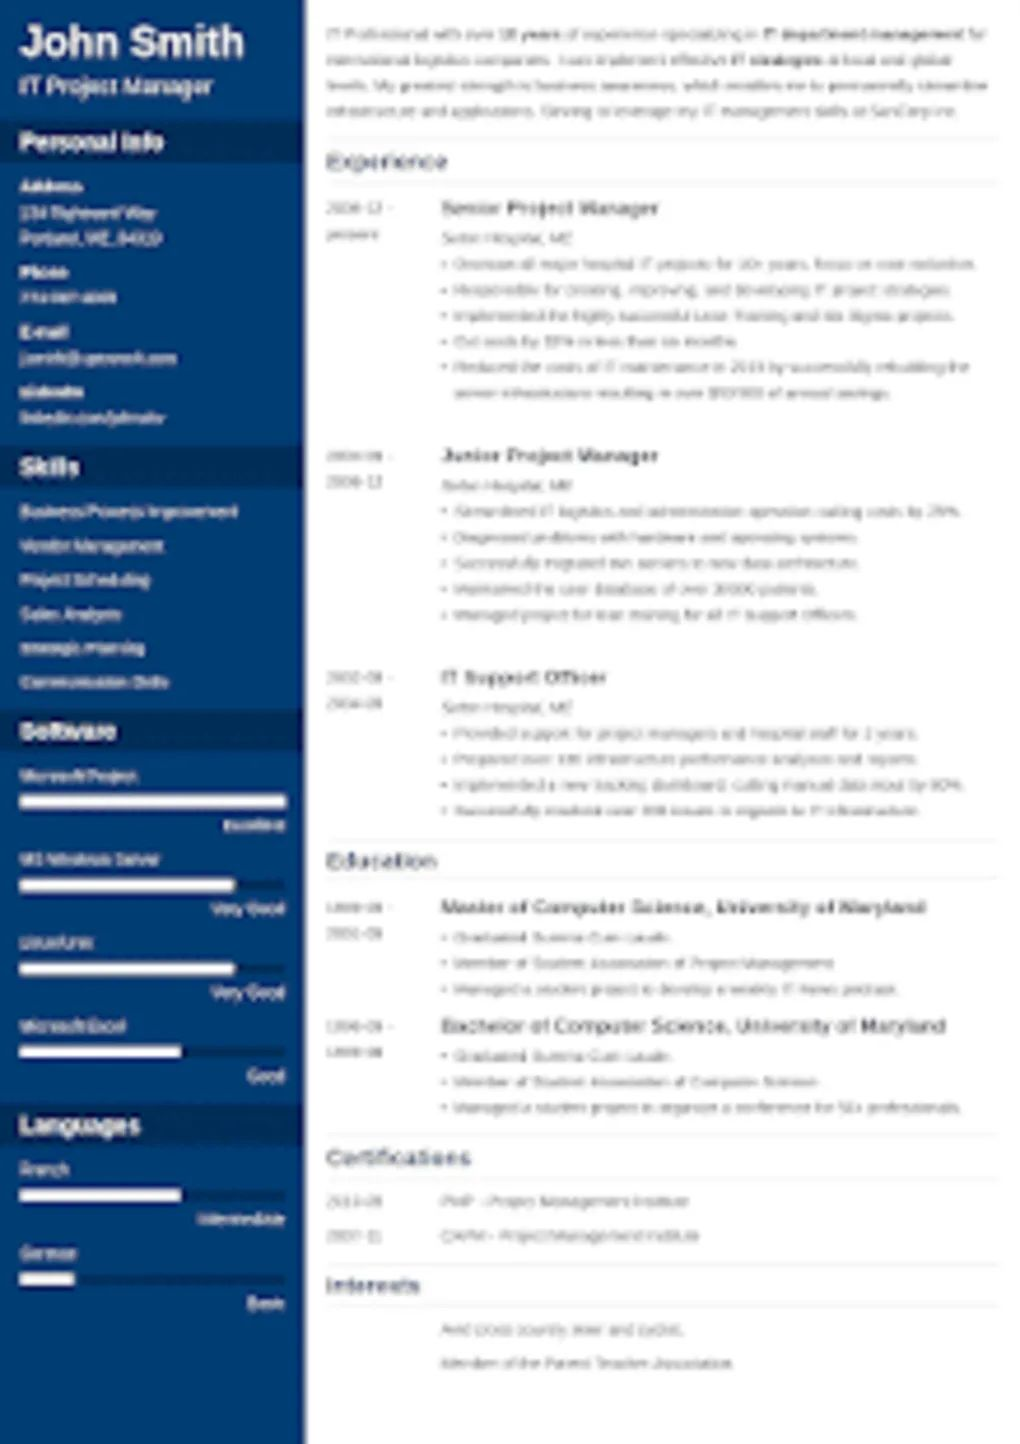 resume maker for iphone